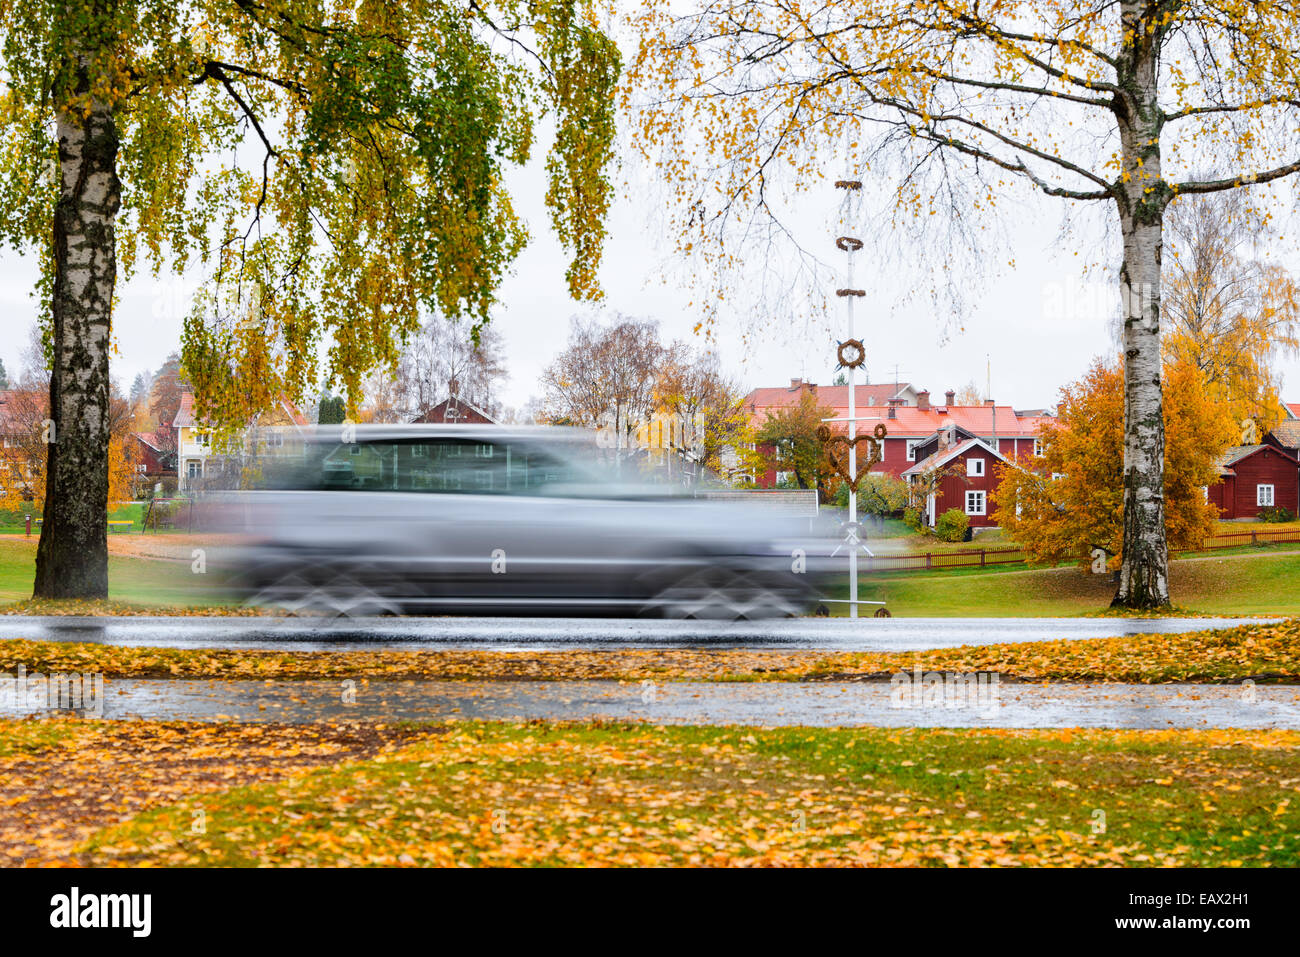 Car moving at speed down a wet road in autumn - Stock Image